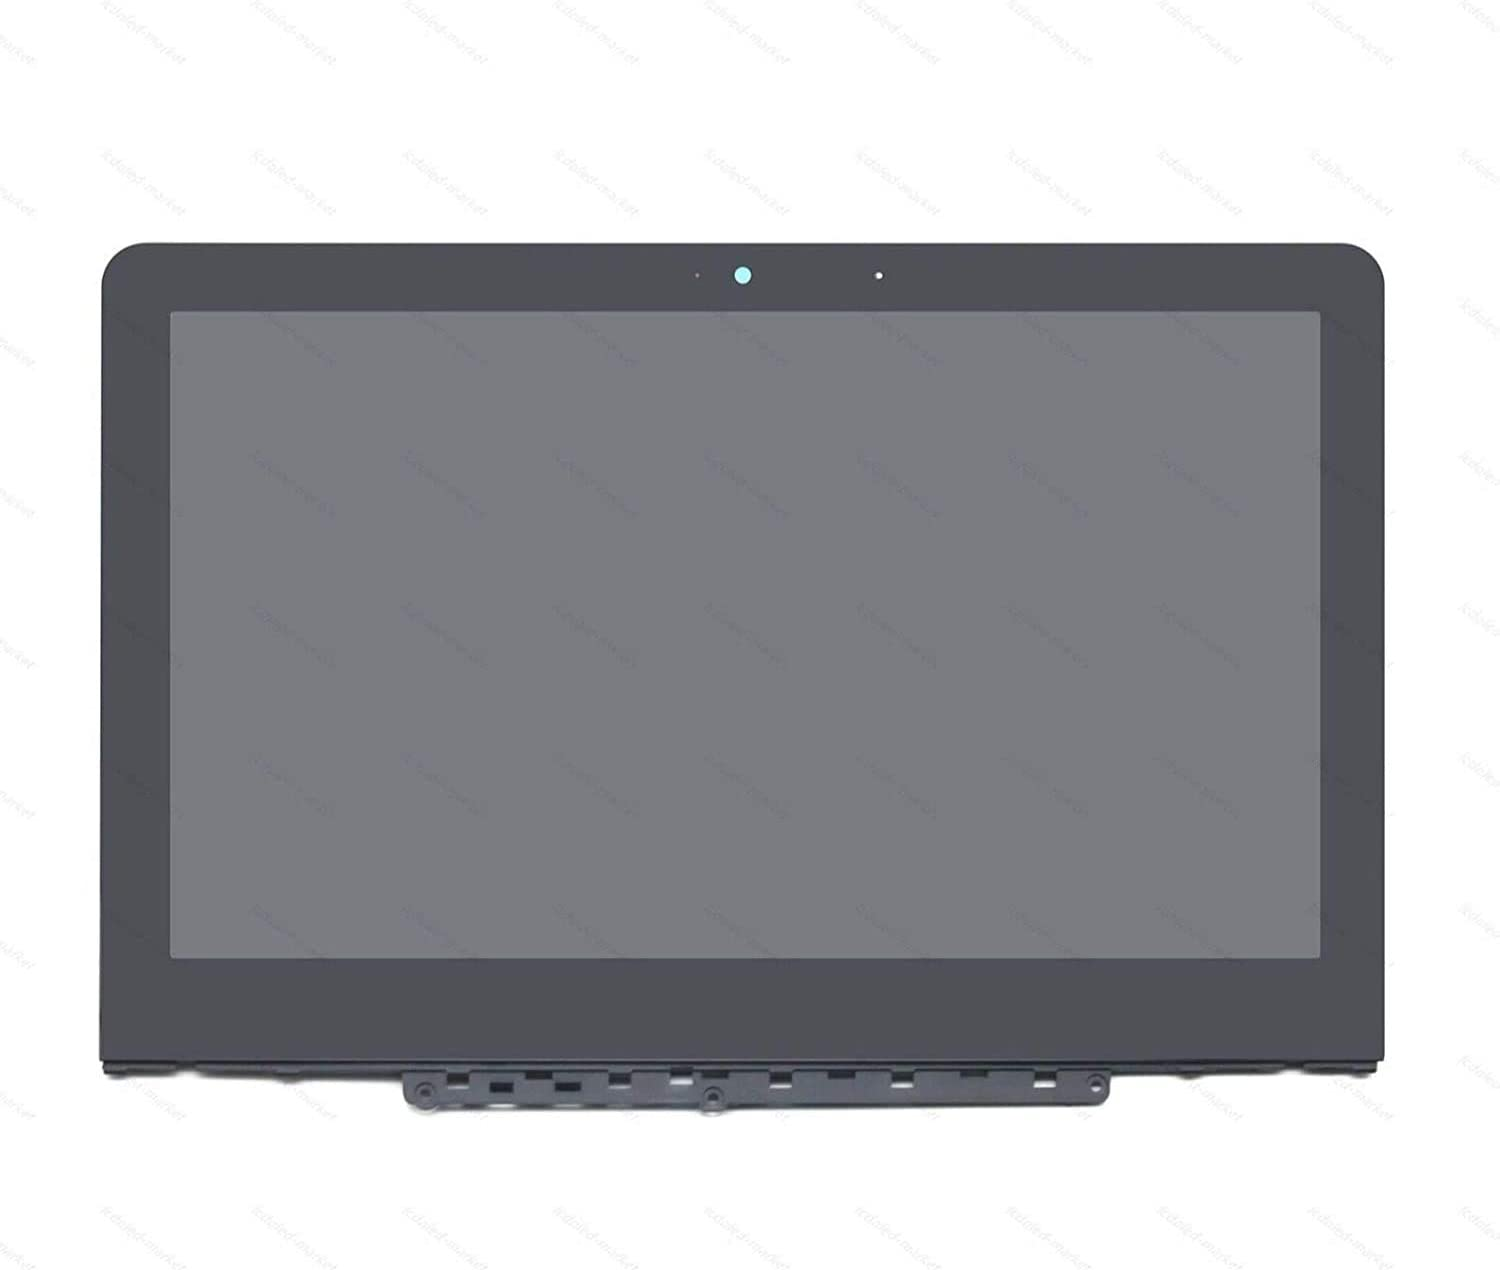 15.6 (3840x2160 Resolution) UHD 4K LCD Touch Screen fit Dell xps 15 9570 Precision 5530 Display Complete Assembly - JXF32